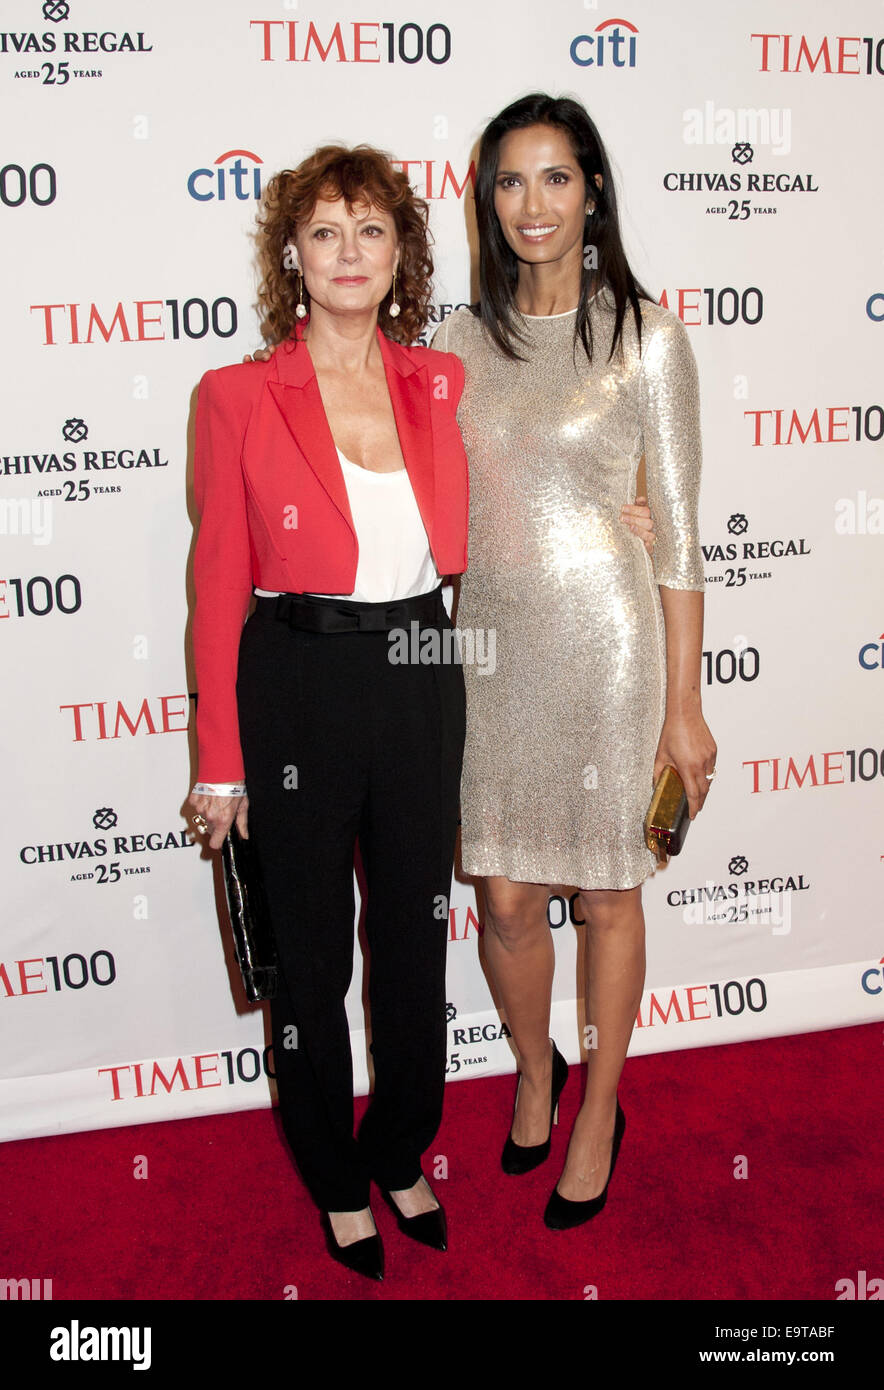 TIME celebrates its TIME 100 issue of the 100 most influential people in the world gala at Frederick P. Rose Hall - Stock Image